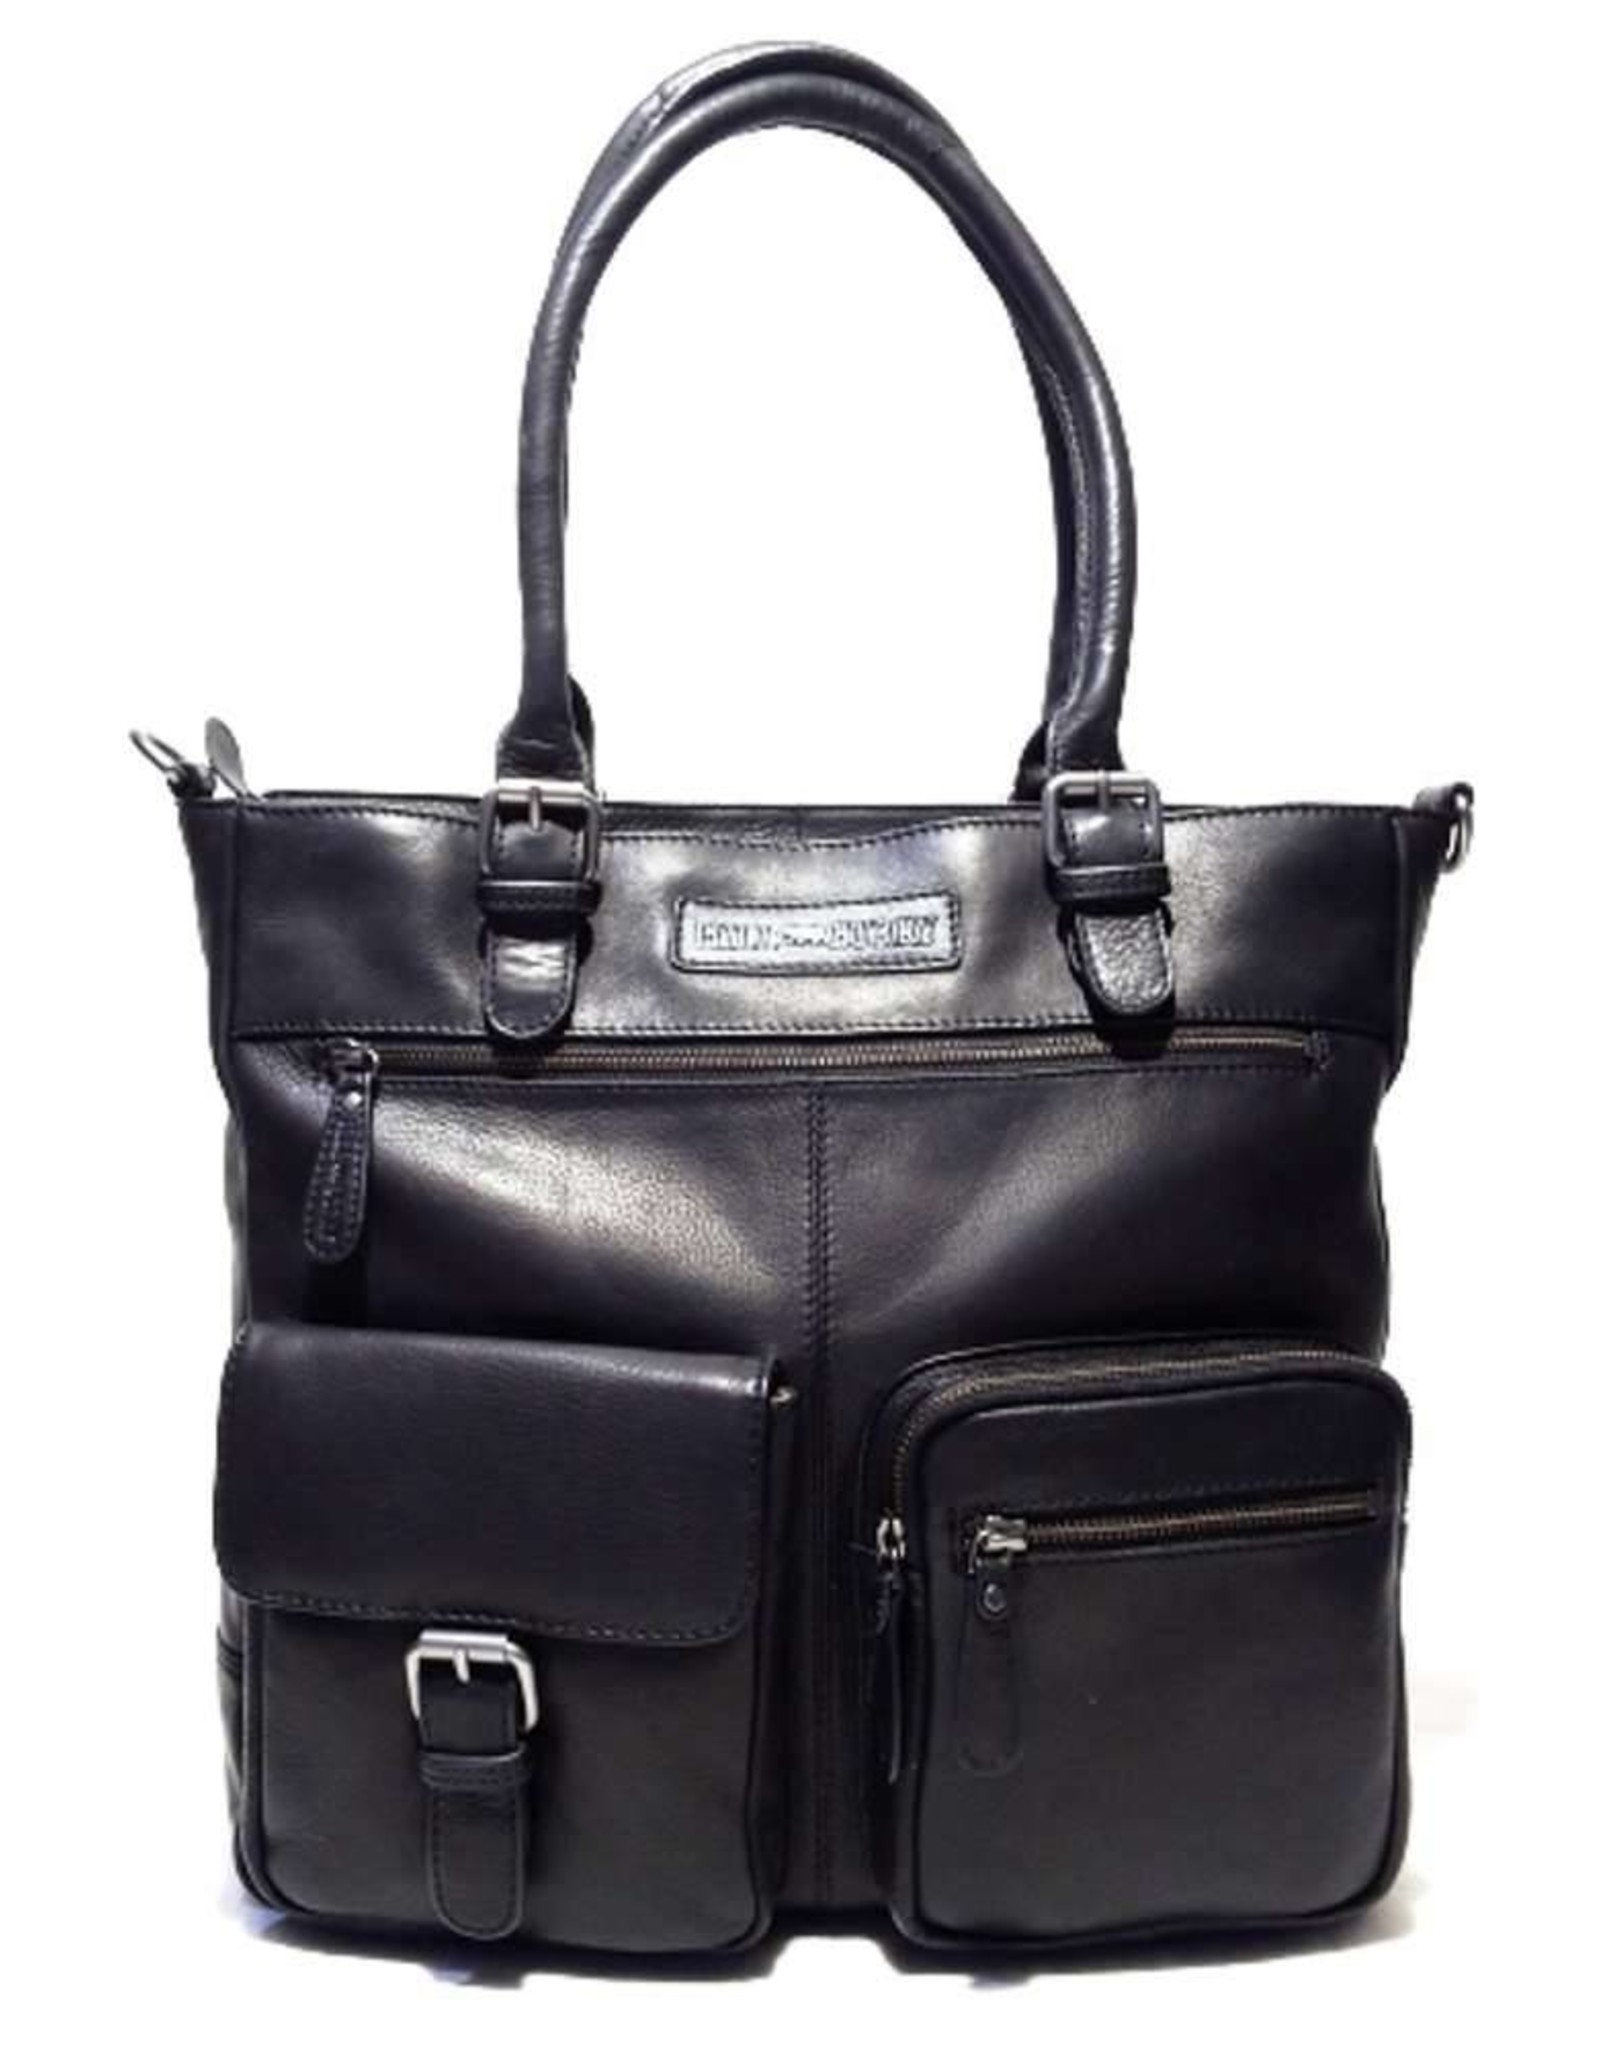 HillBurry Leather laptop bags and Leather work bags - HillBurry Leather Workbag with long handles (black)